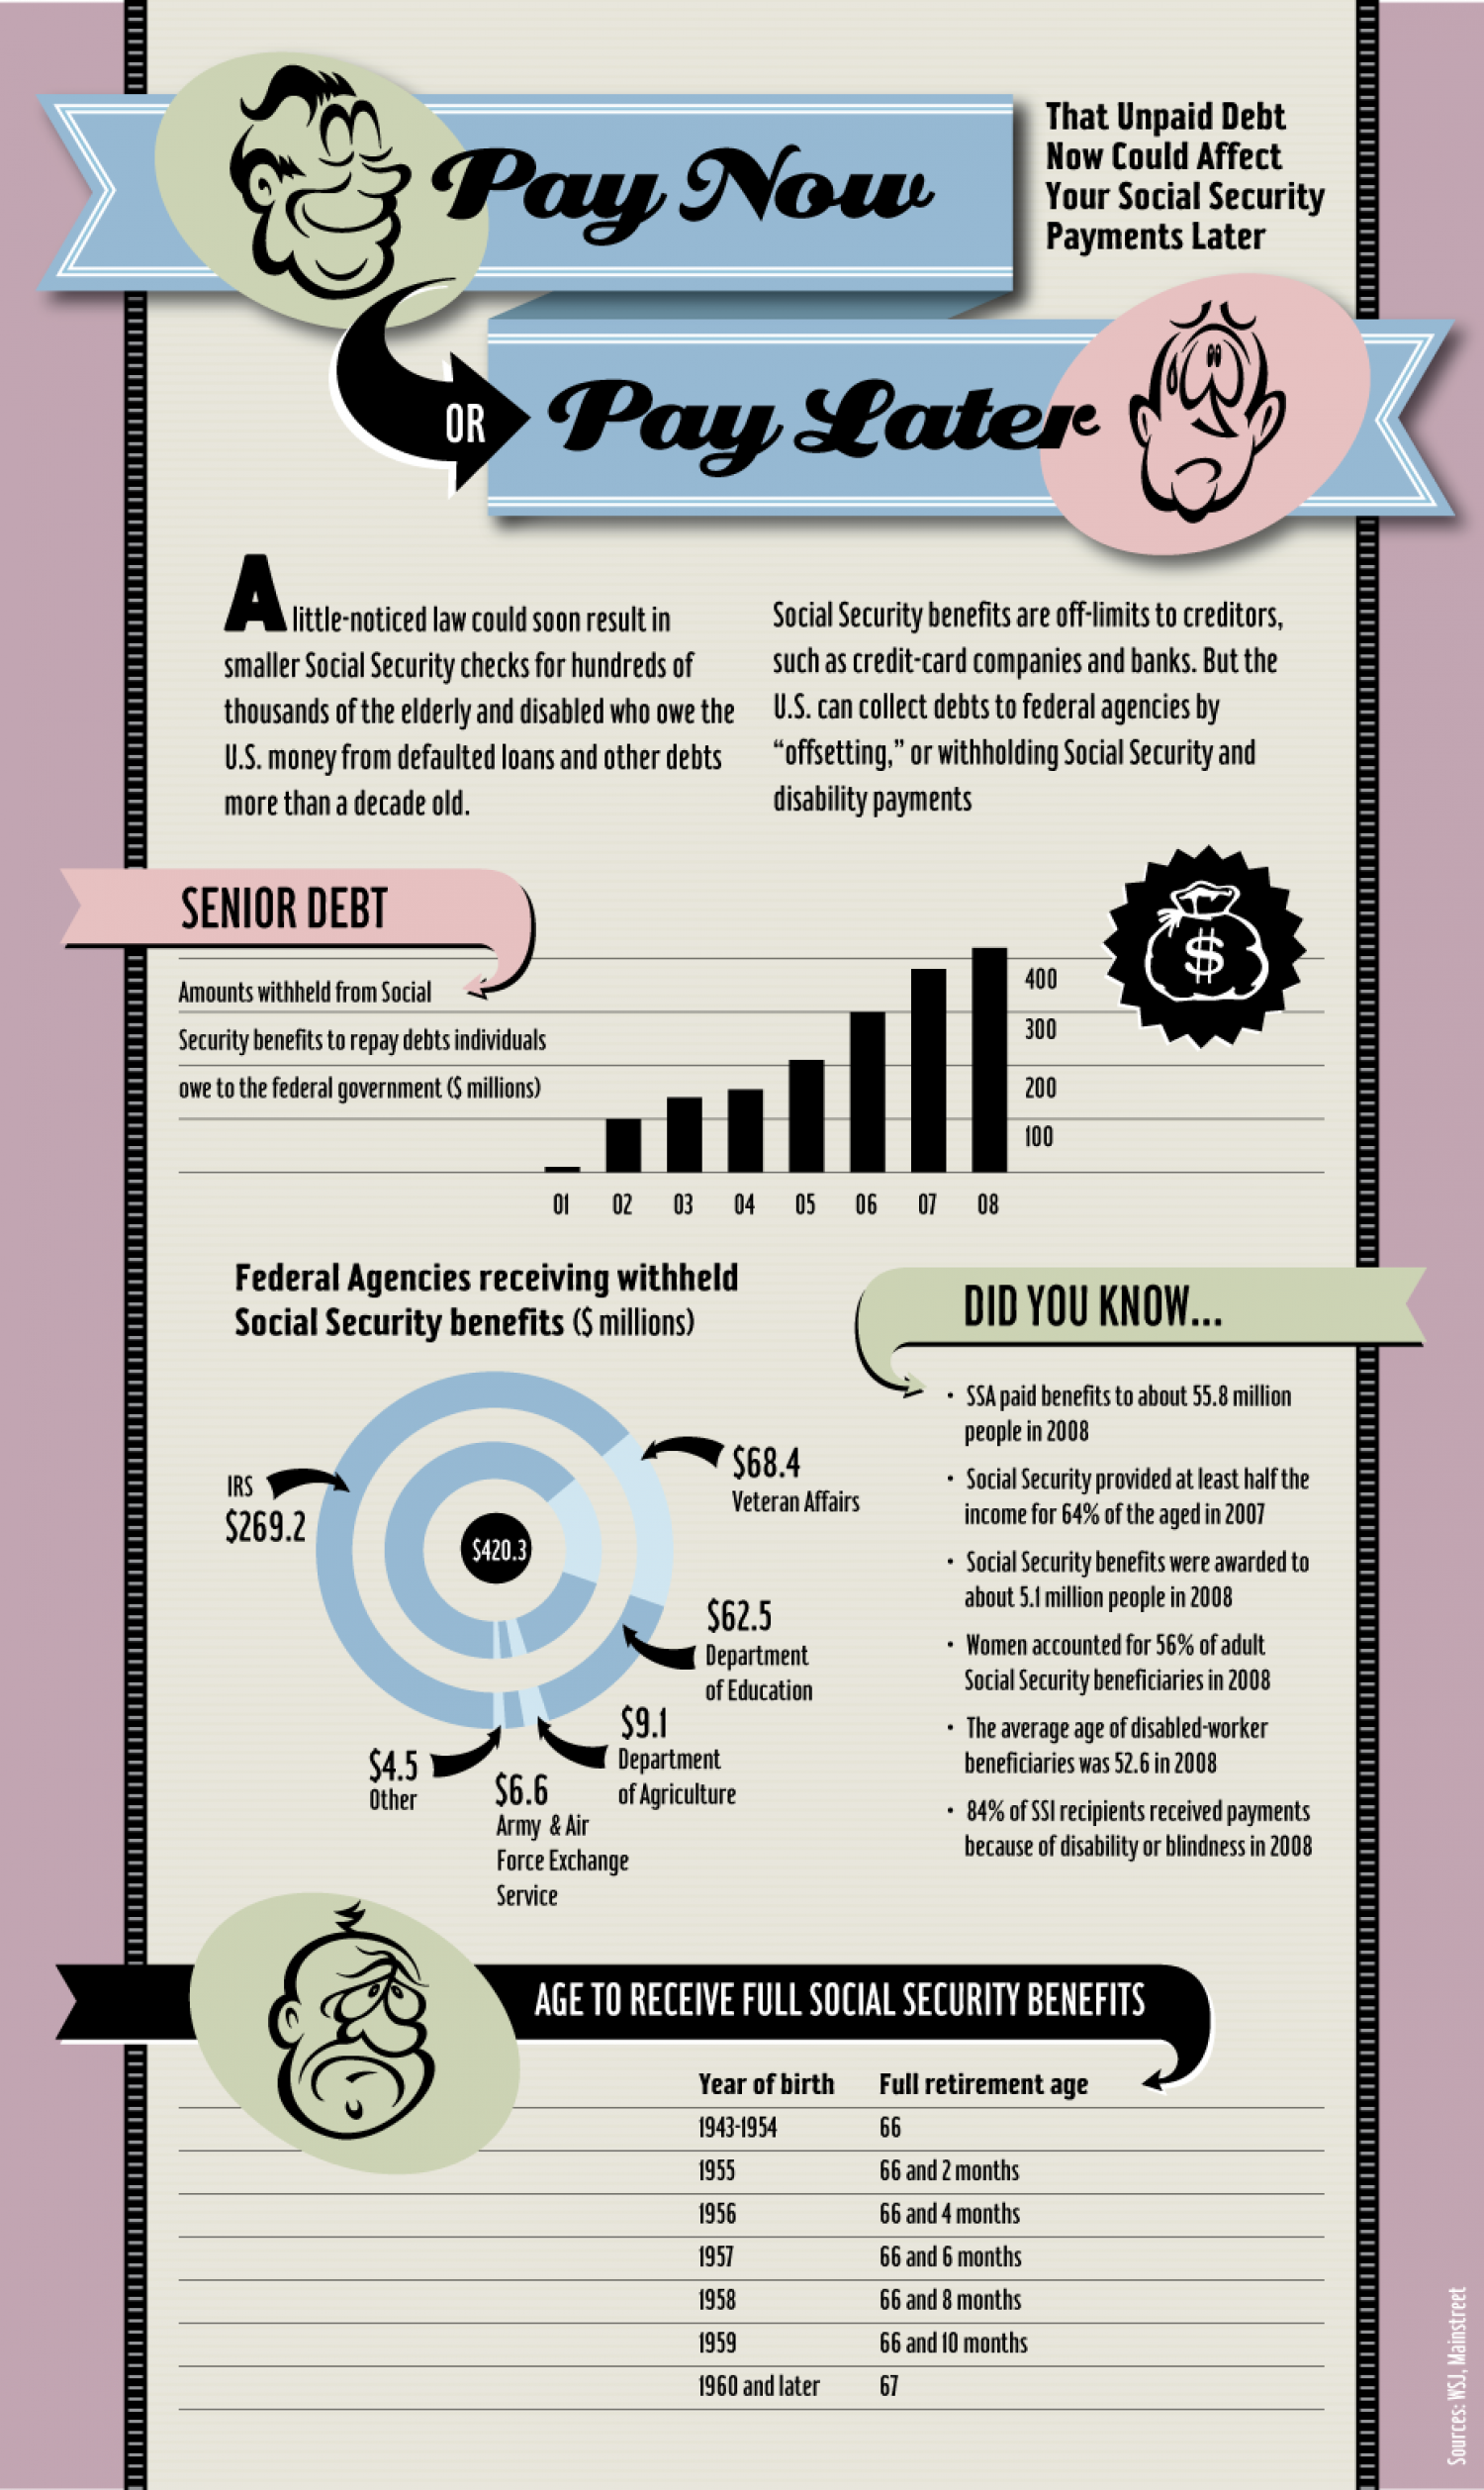 Social Security: Pay Now or Pay Later Infographic